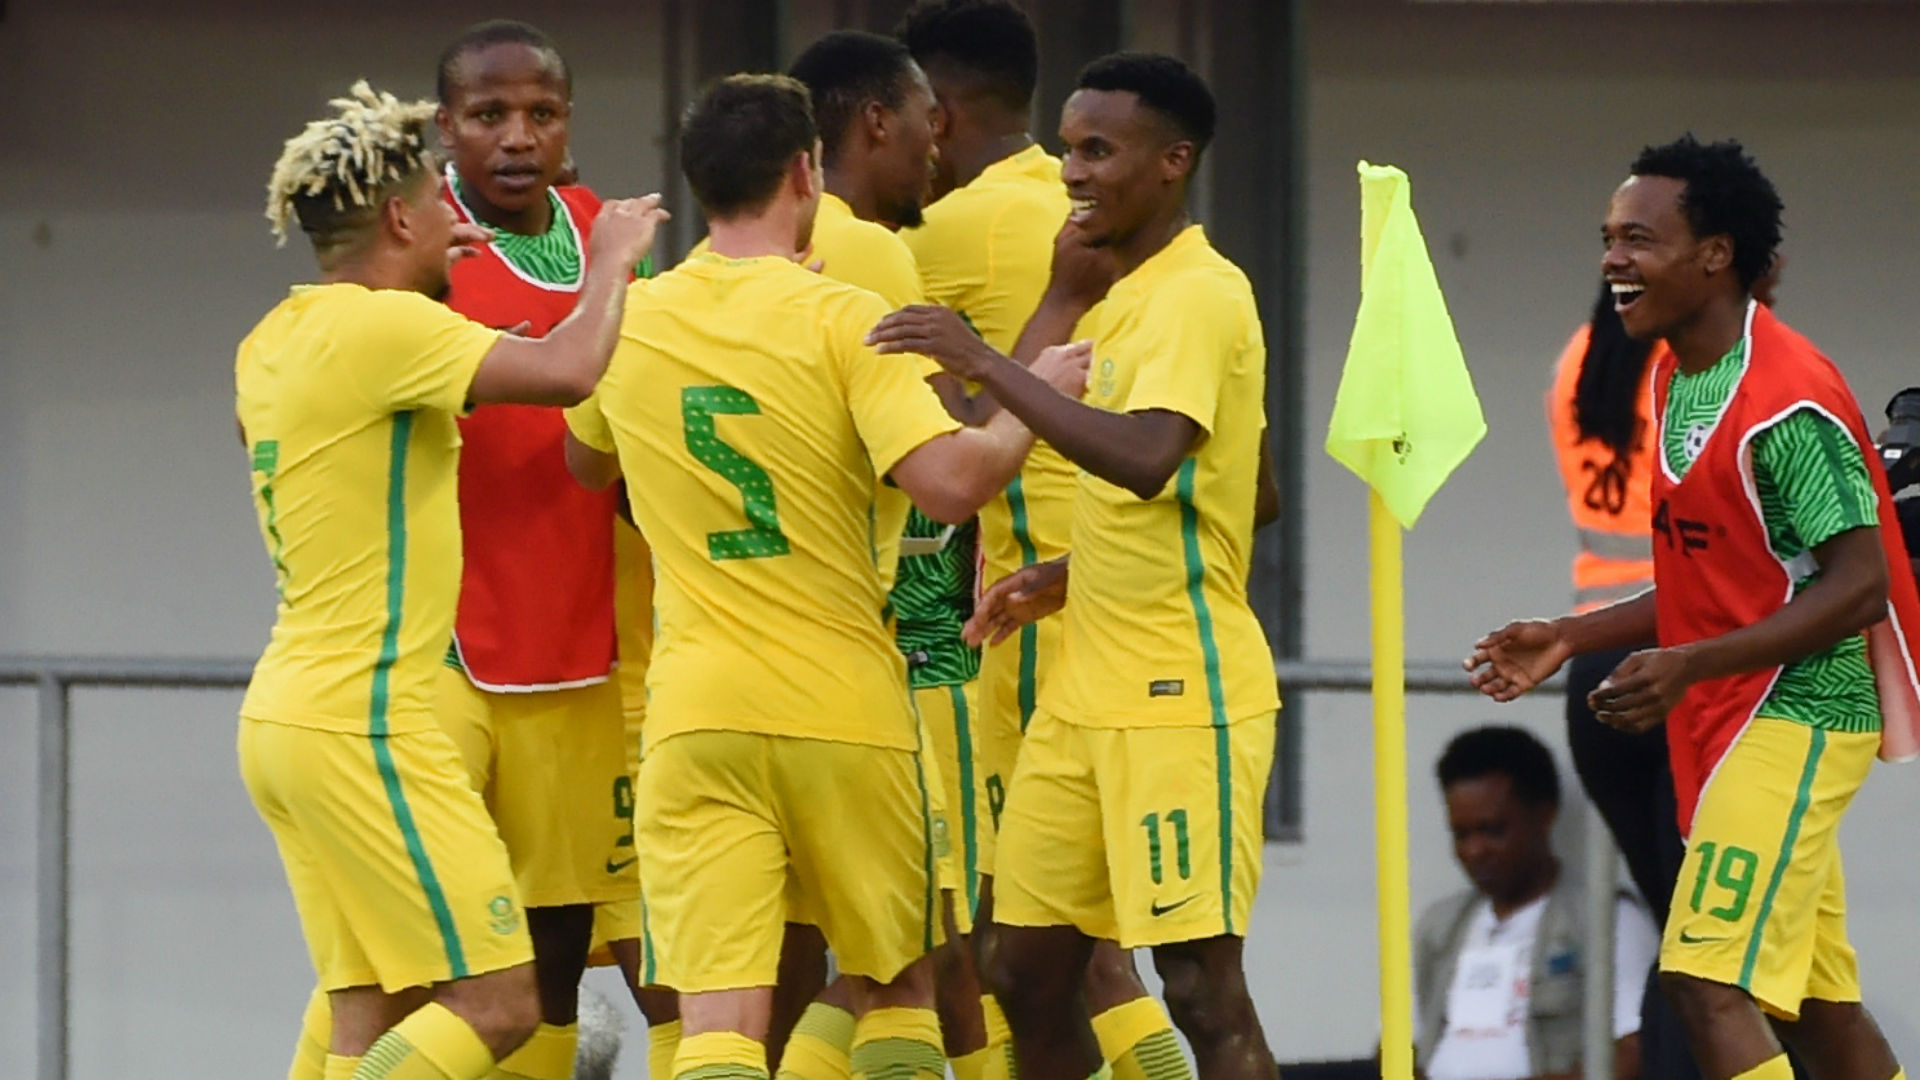 Afcon 2019: Eagles fall 0-2 to Bafana